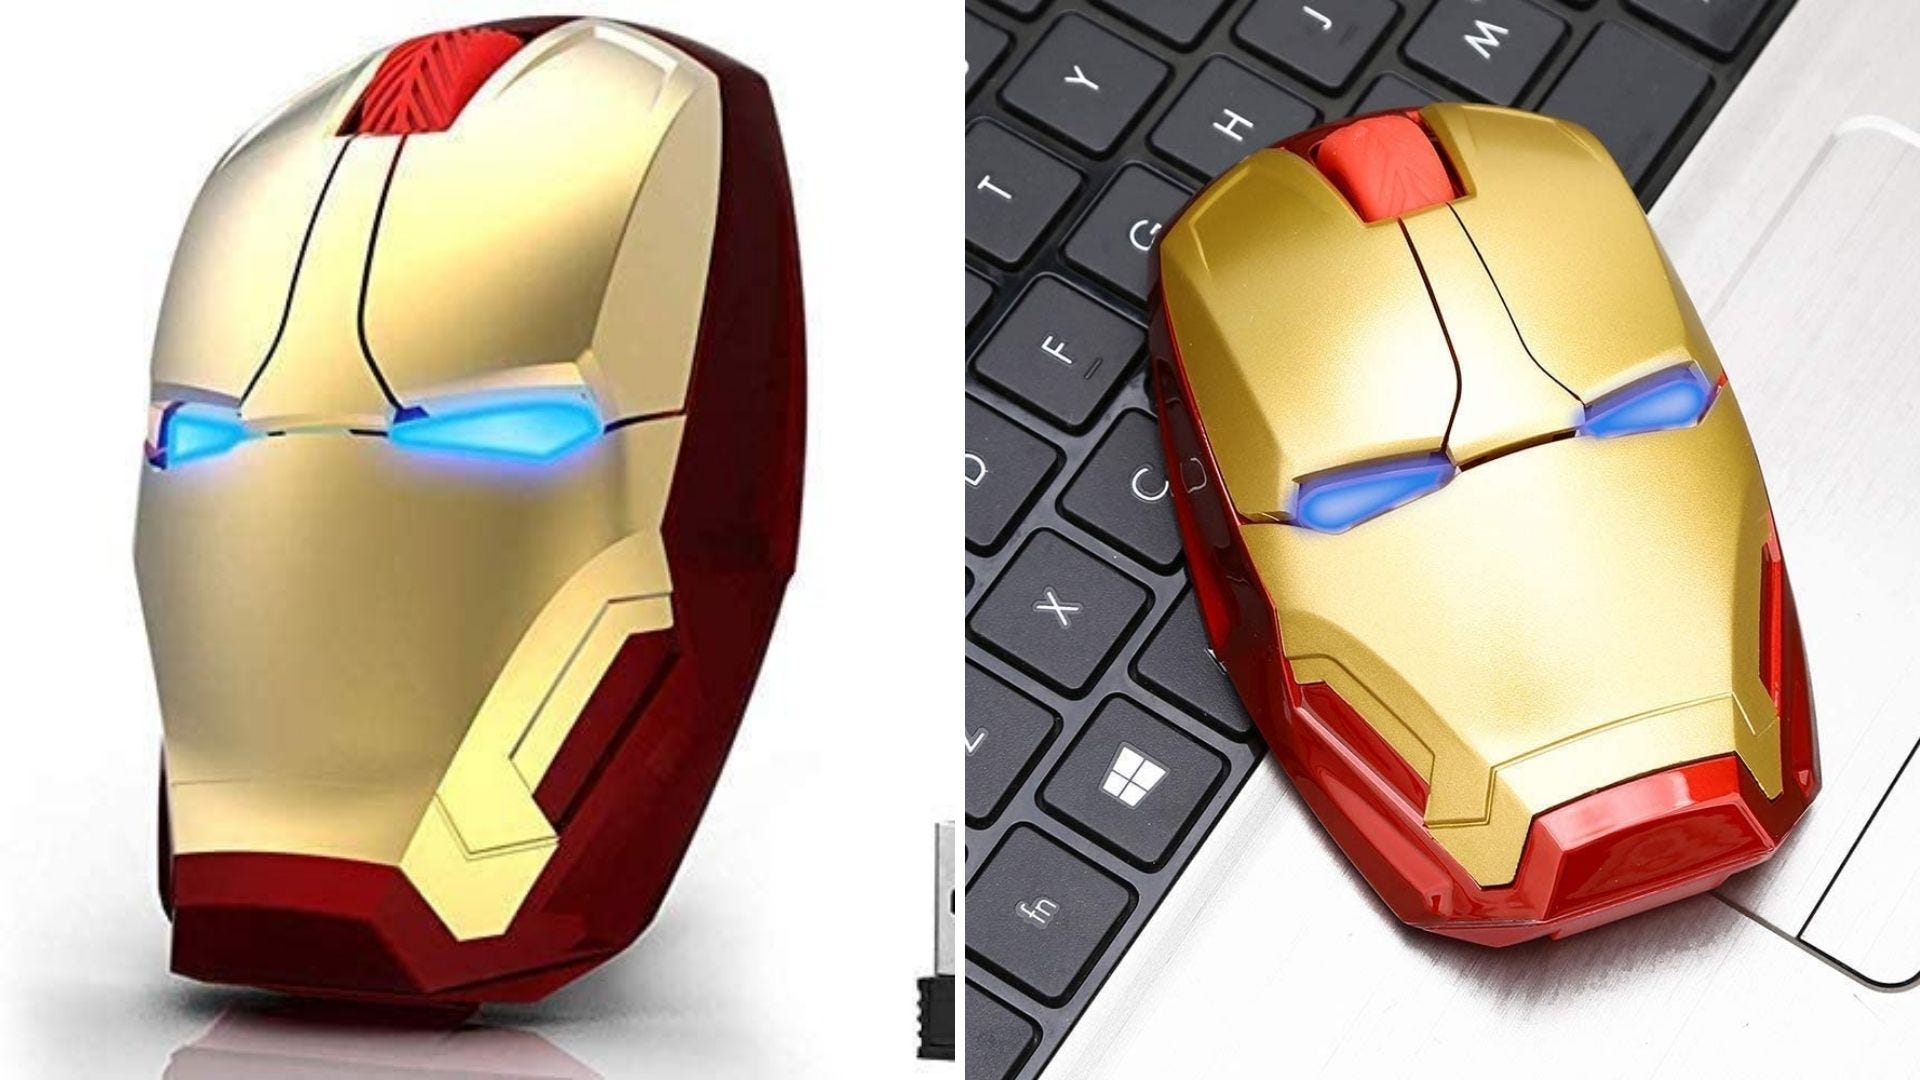 Two photos of a computer mouse shaped like Iron Man's helmet